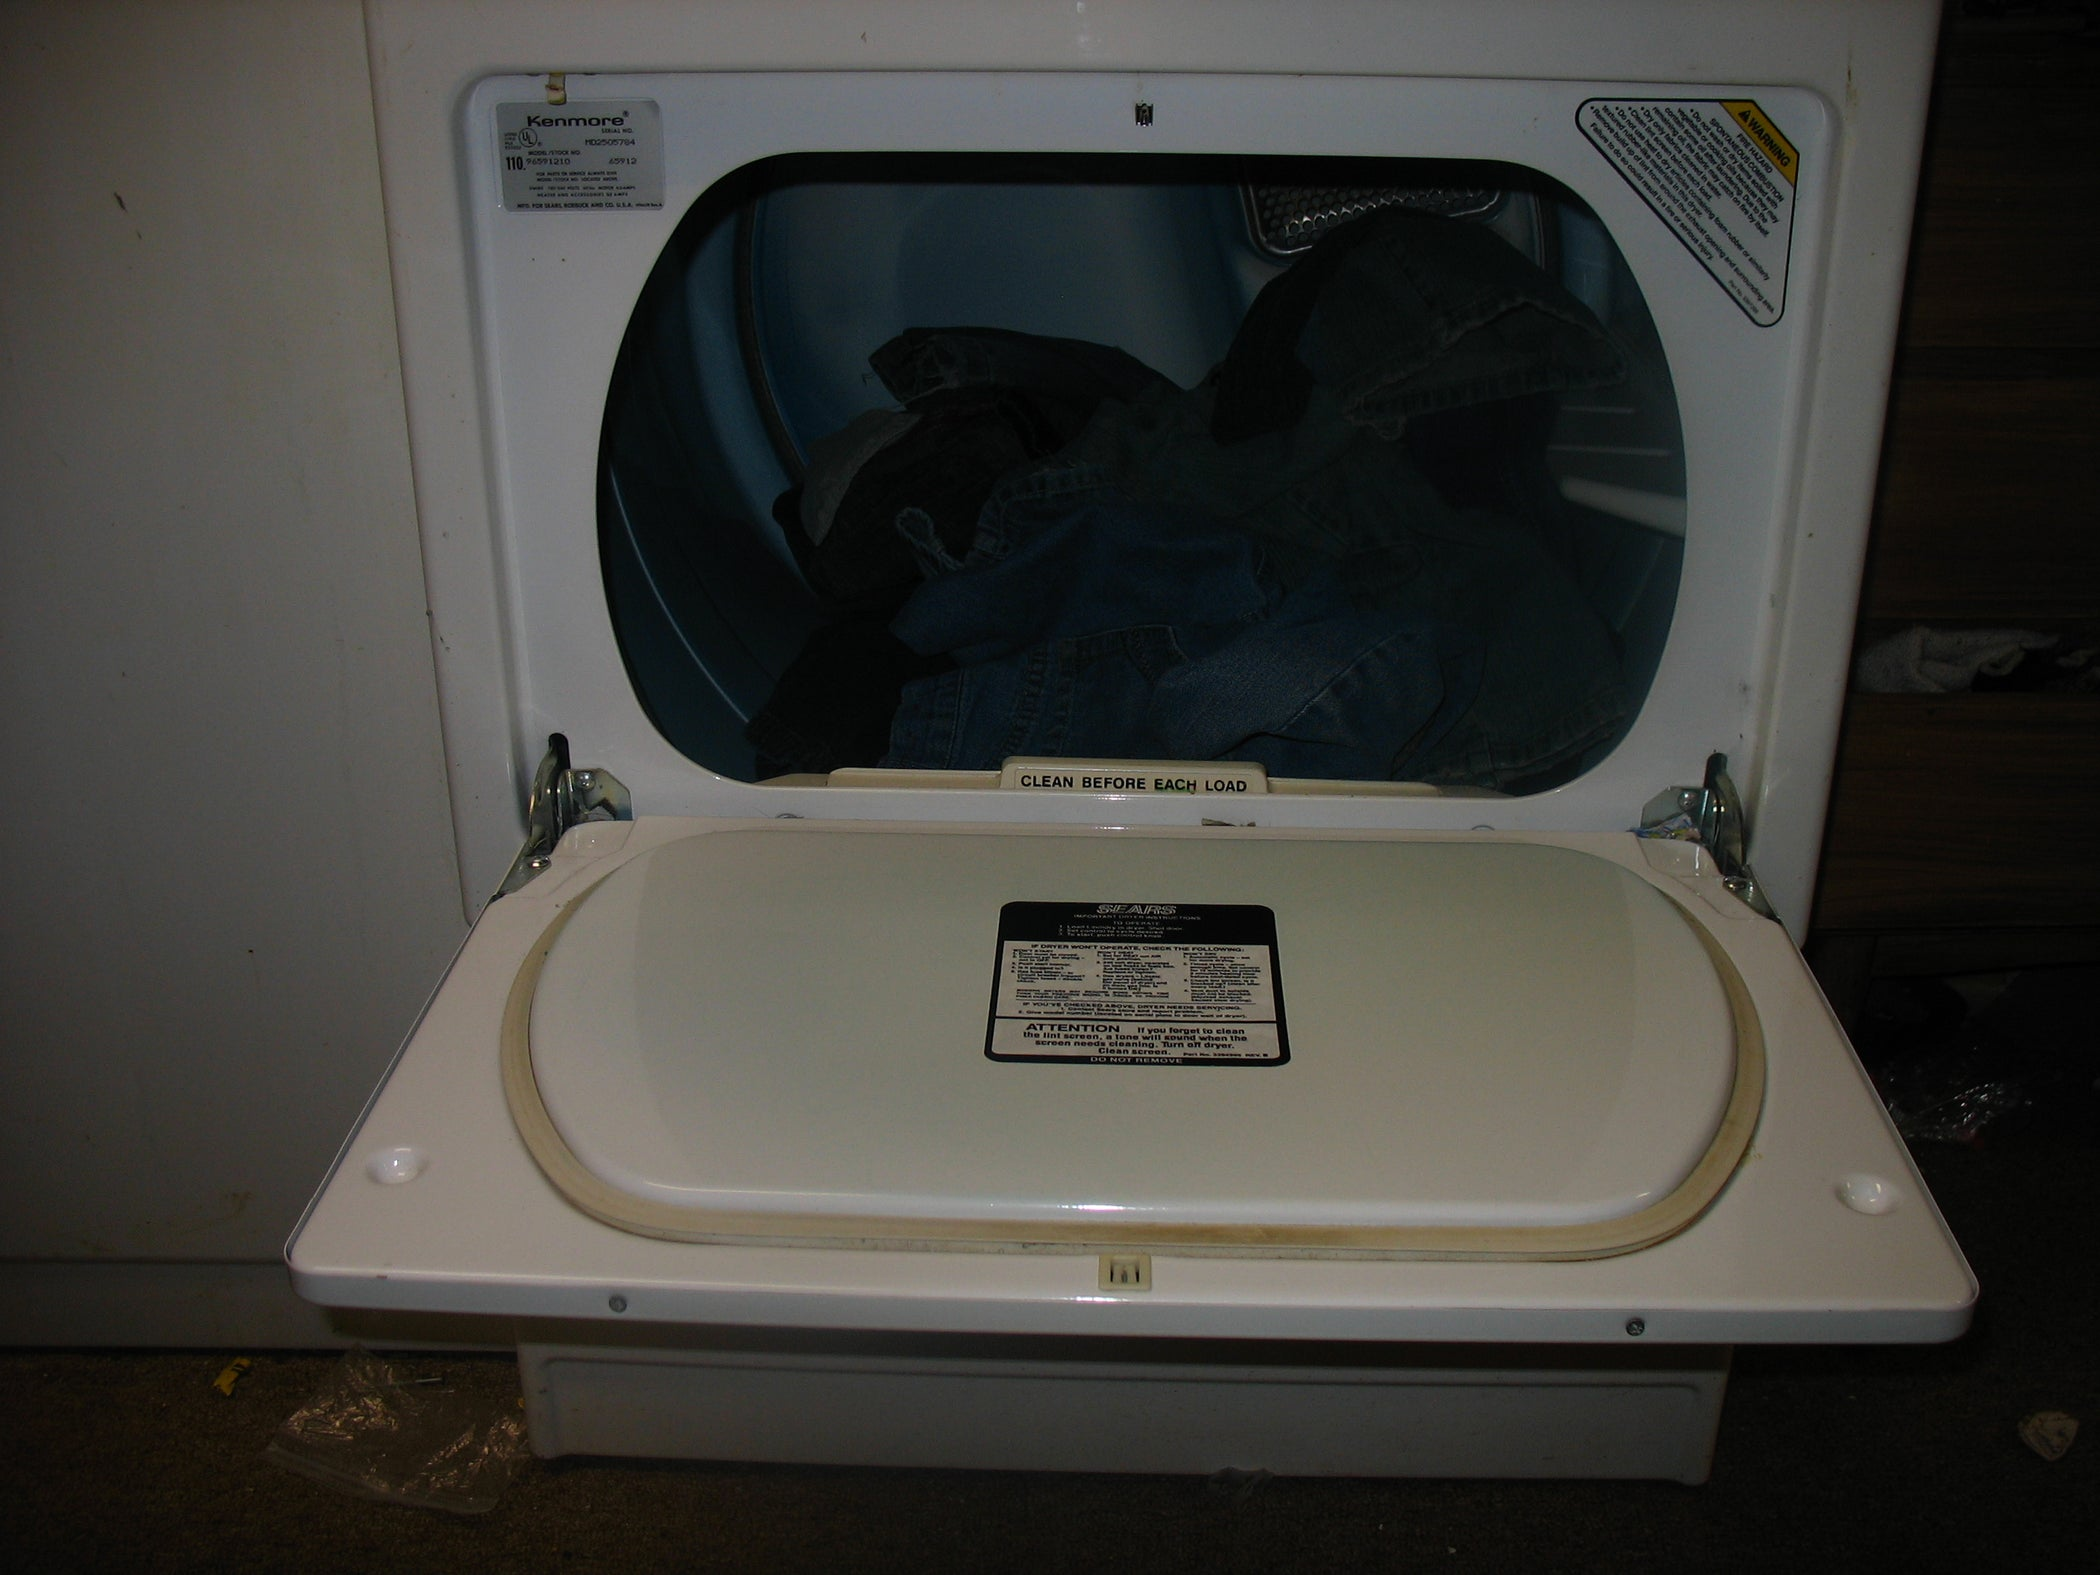 Dryer Wont Heat Up 5 Steps Is There A Diagram Showing All The Wires Coming To T5225